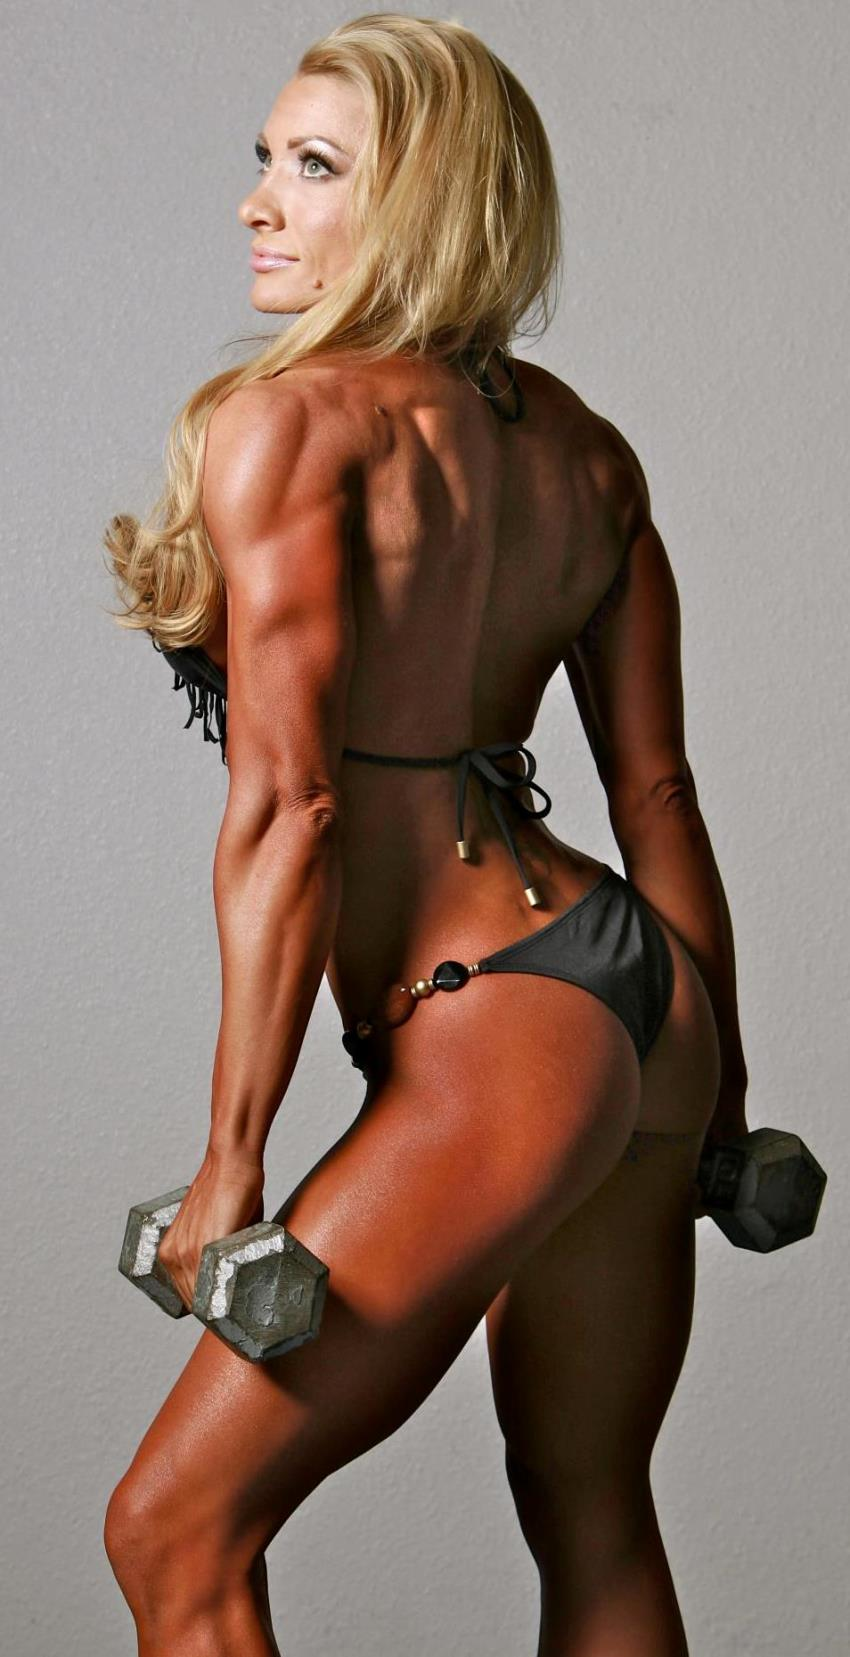 Wendy Fortino posing from the side, displaying her ripped and muscular arms and legs, as she holds dumbbells in her hands